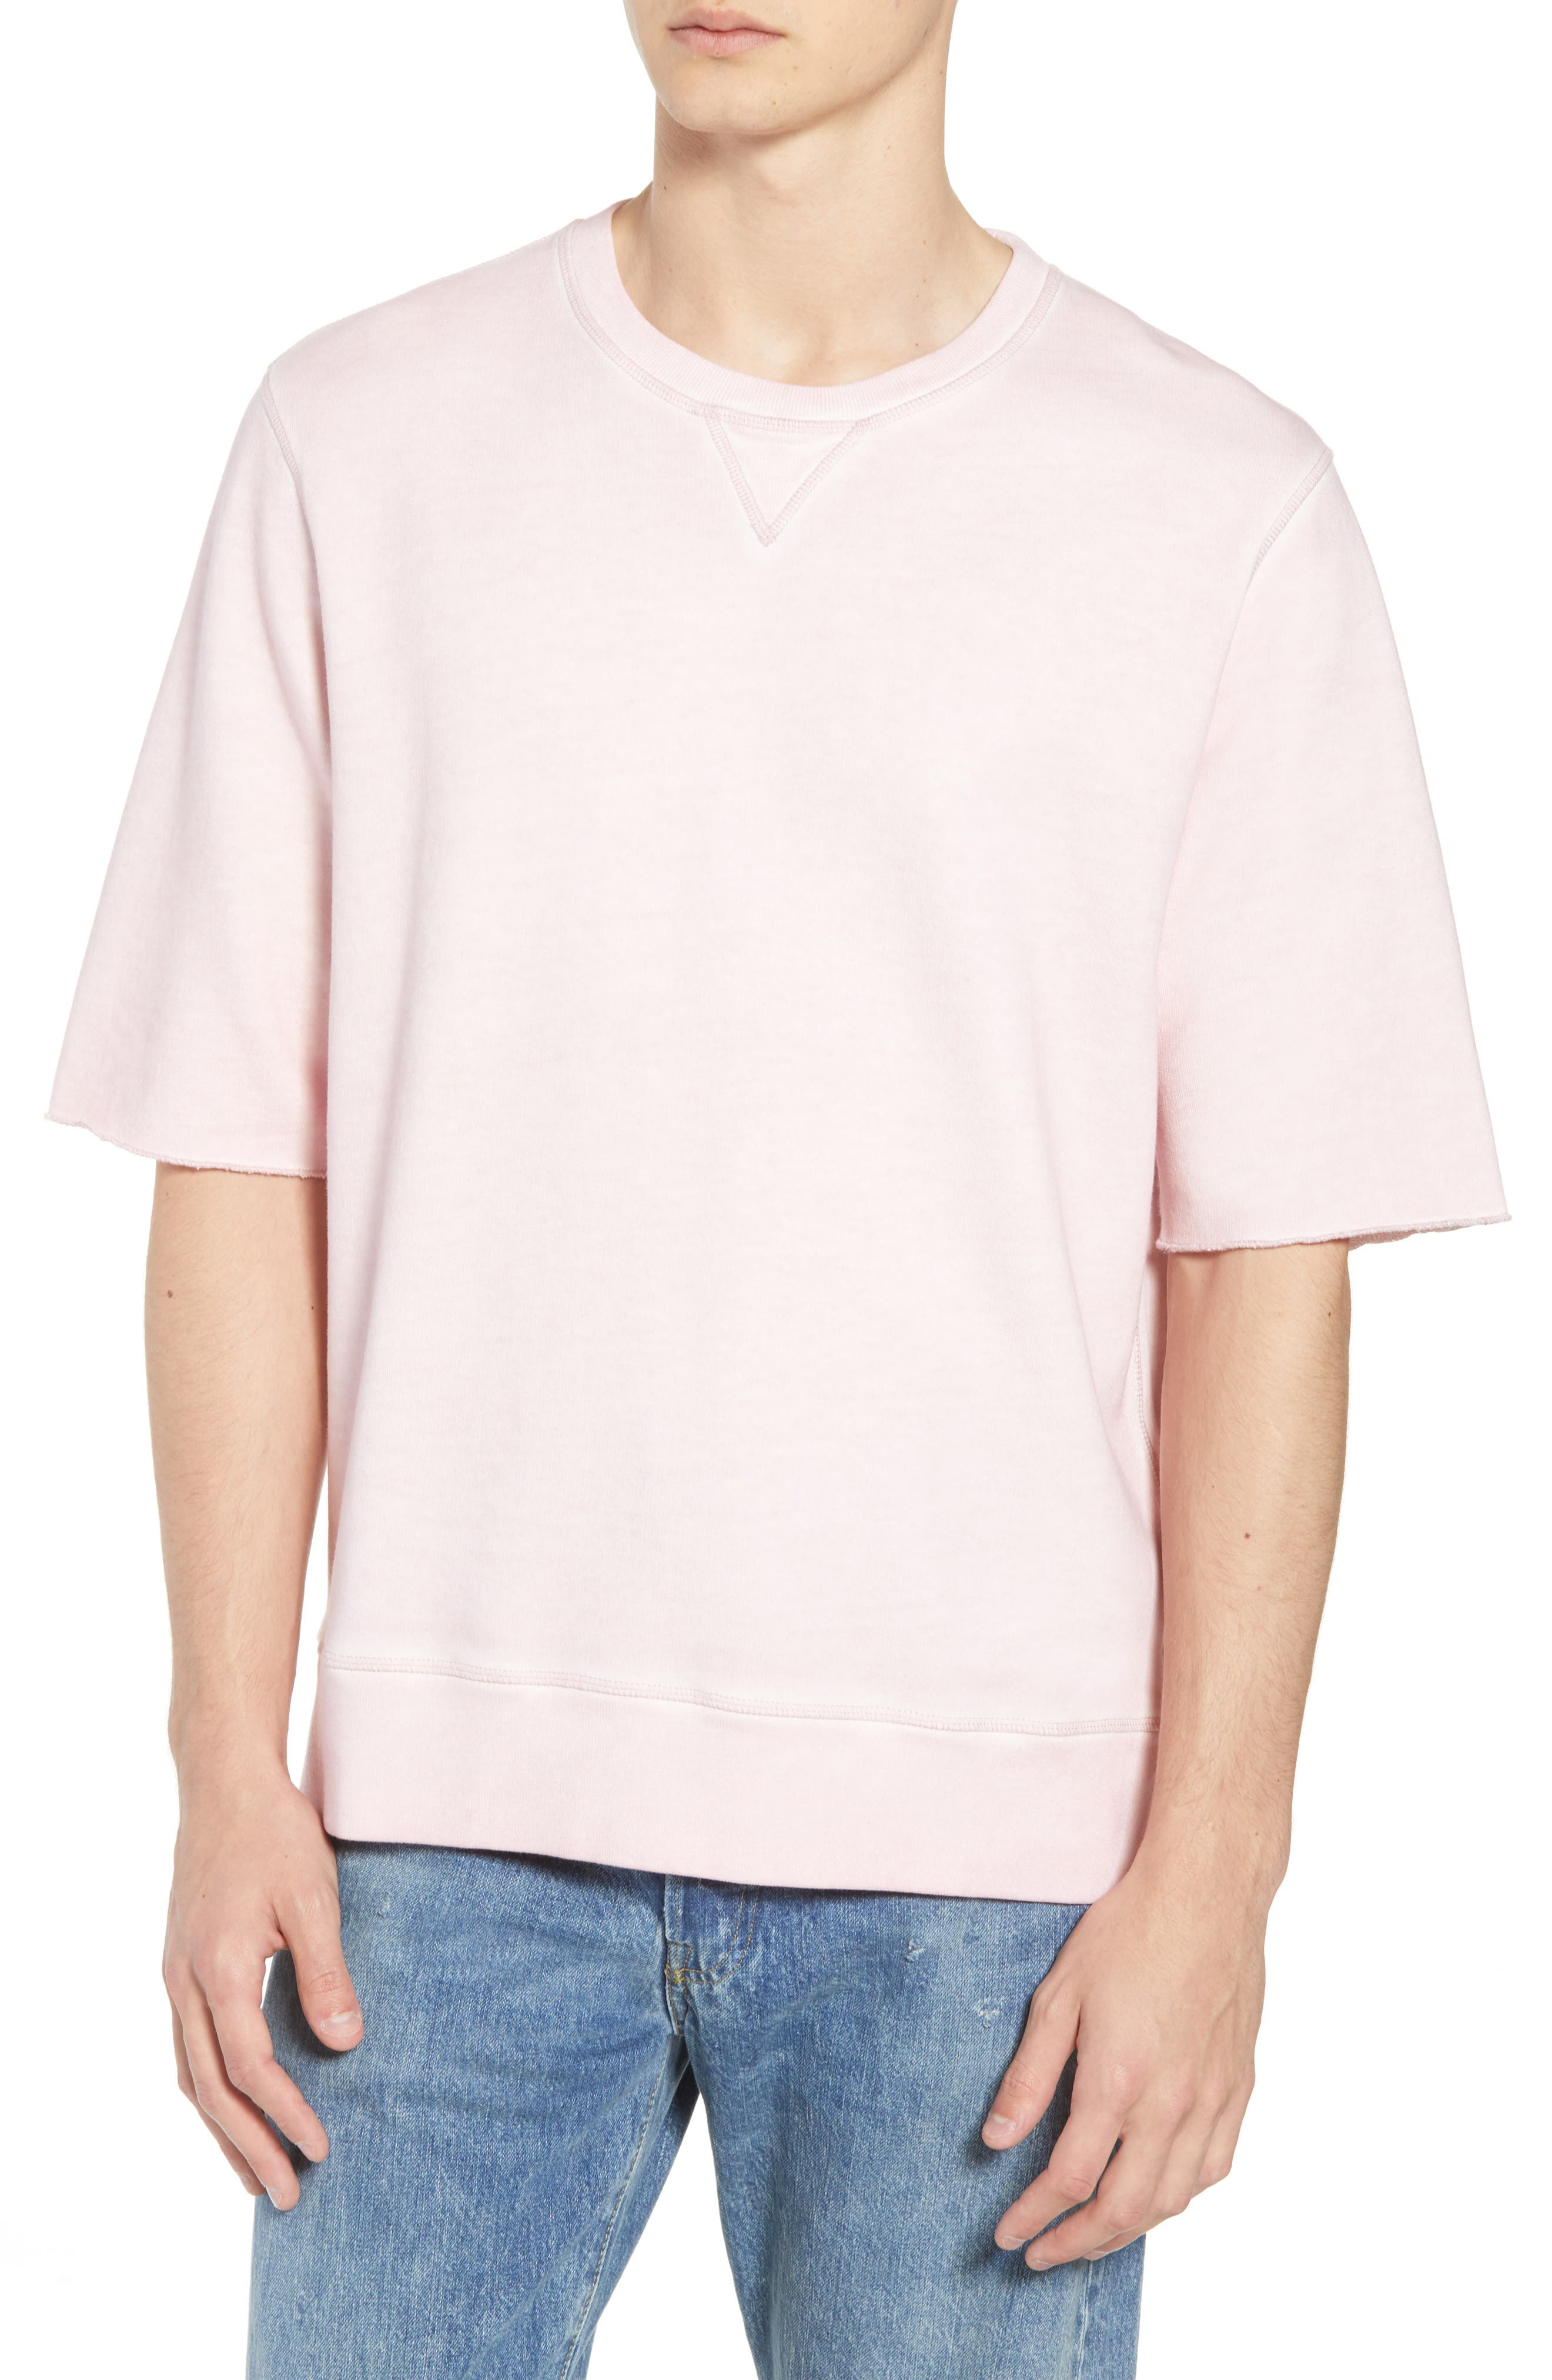 Levis'<sup>®</sup> Made & Crafted<sup>™</sup> Standard Fit T-Shirt,                         Main,                         color, Keepsake Lilac